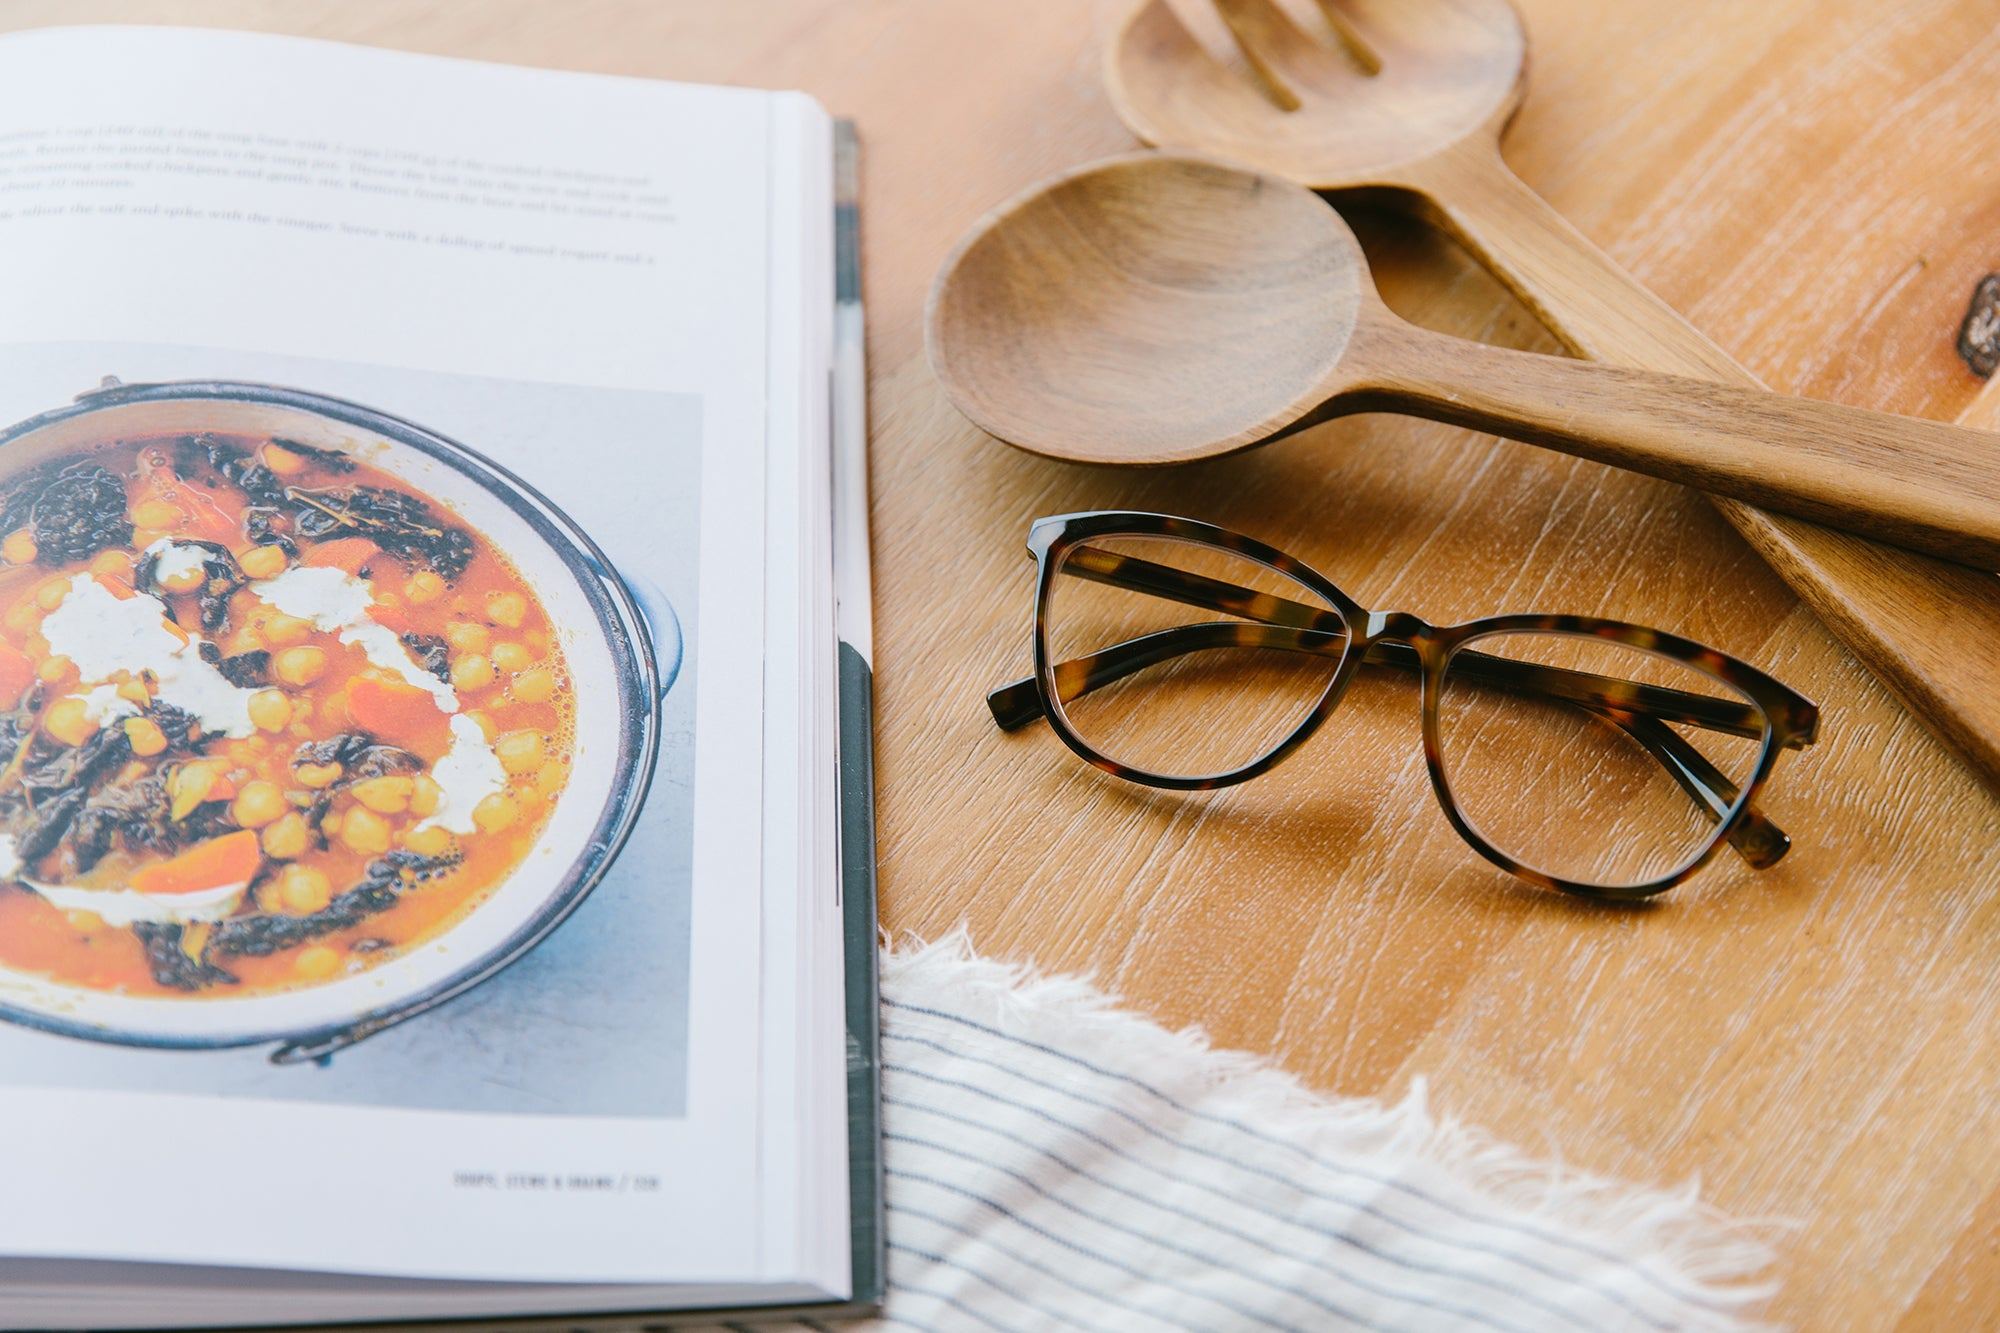 Peepers blue light reading glasses next to cookbook and utensils